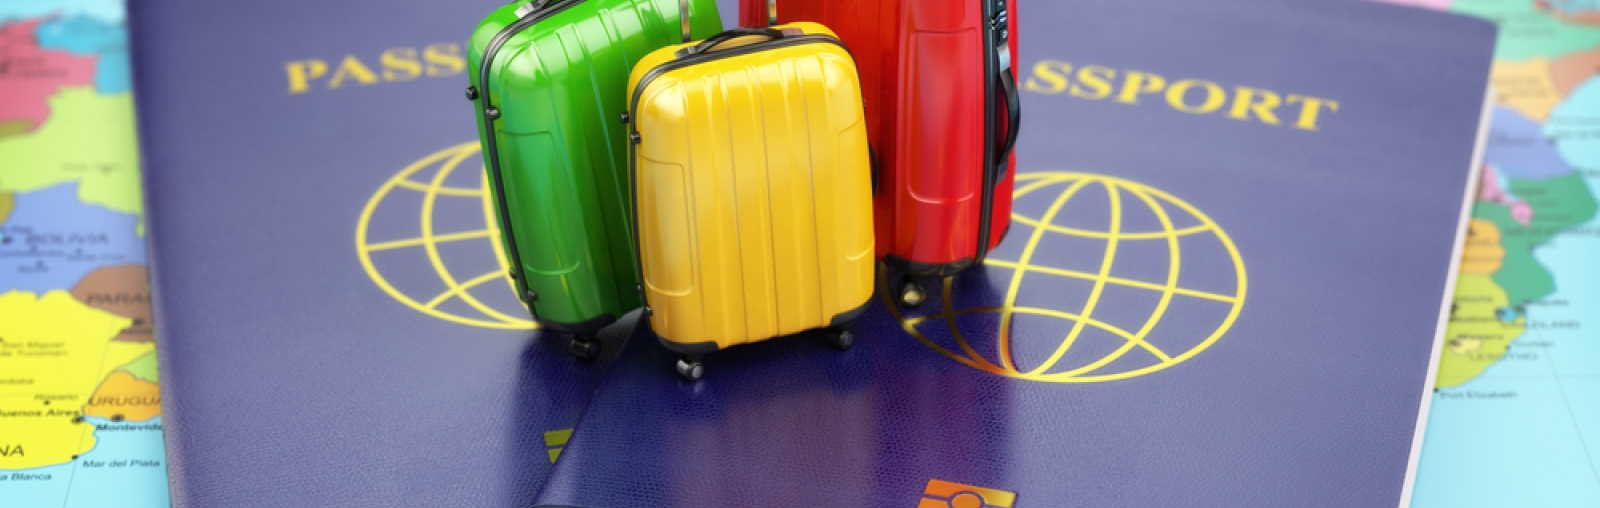 photo of mini suitcases and passports on world map